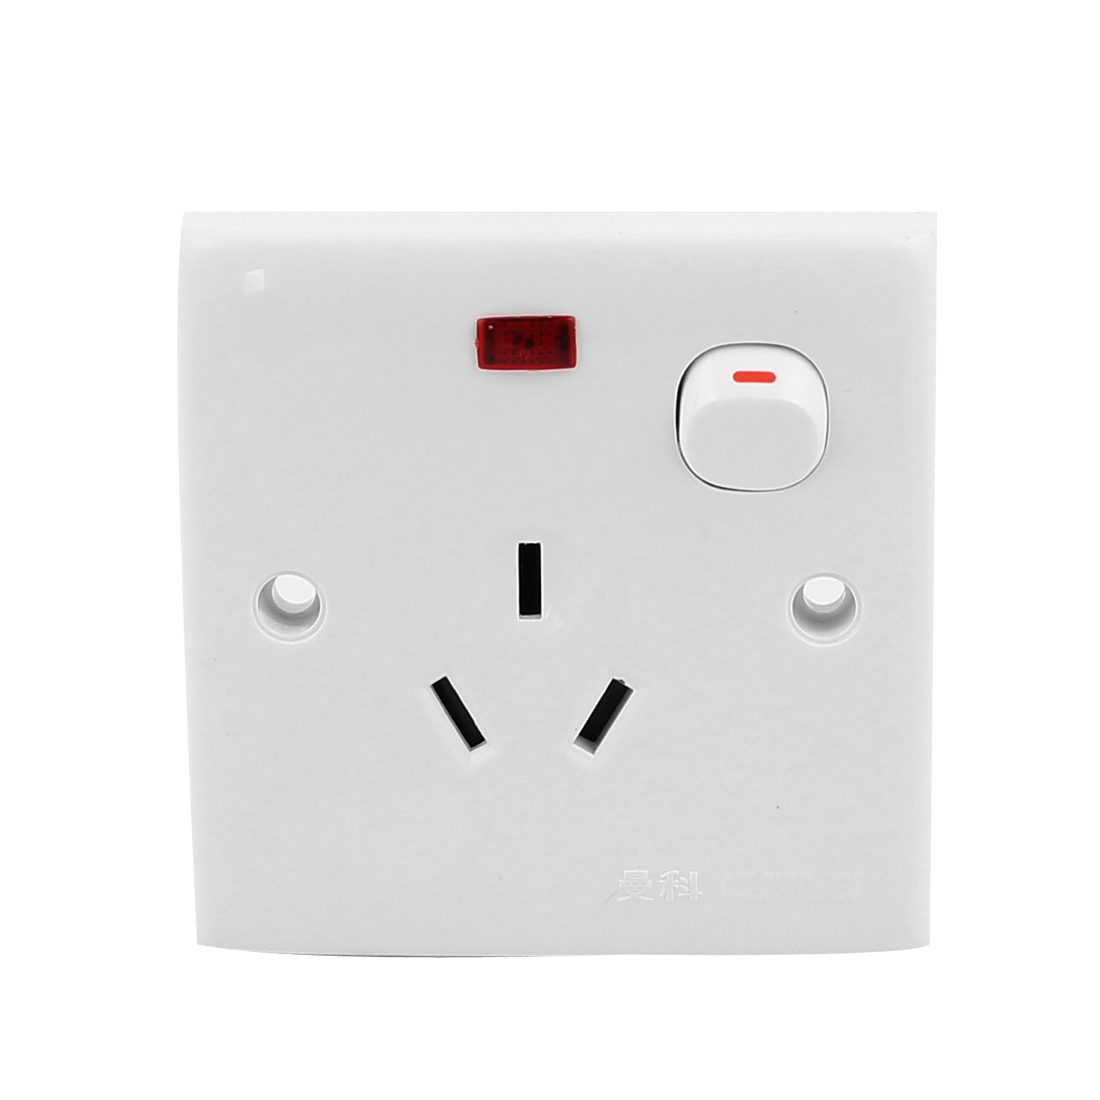 AC 250V 16A Power AU Plug Socket Receptacle Wall Charger Outlet Plate